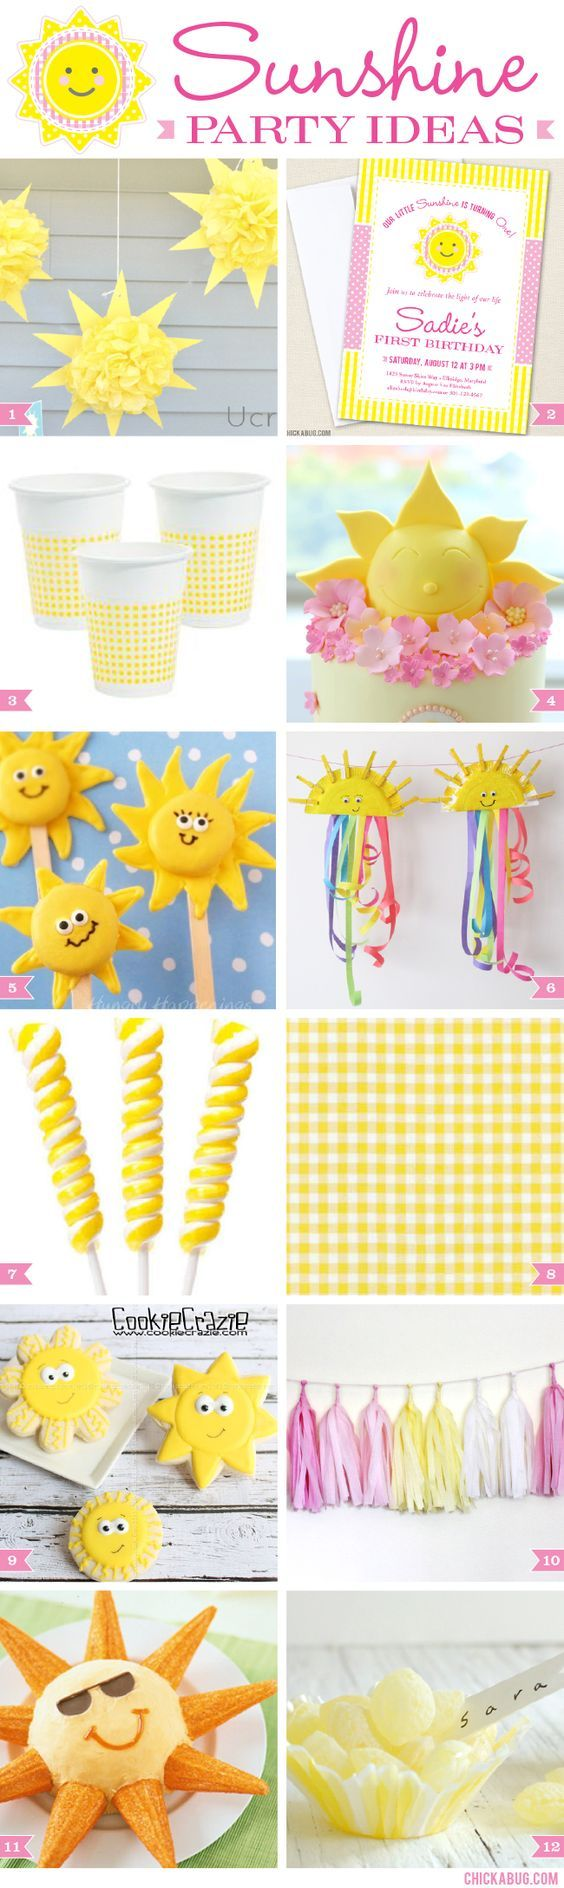 You Are My Sunshine party ideas. Super sweet!: